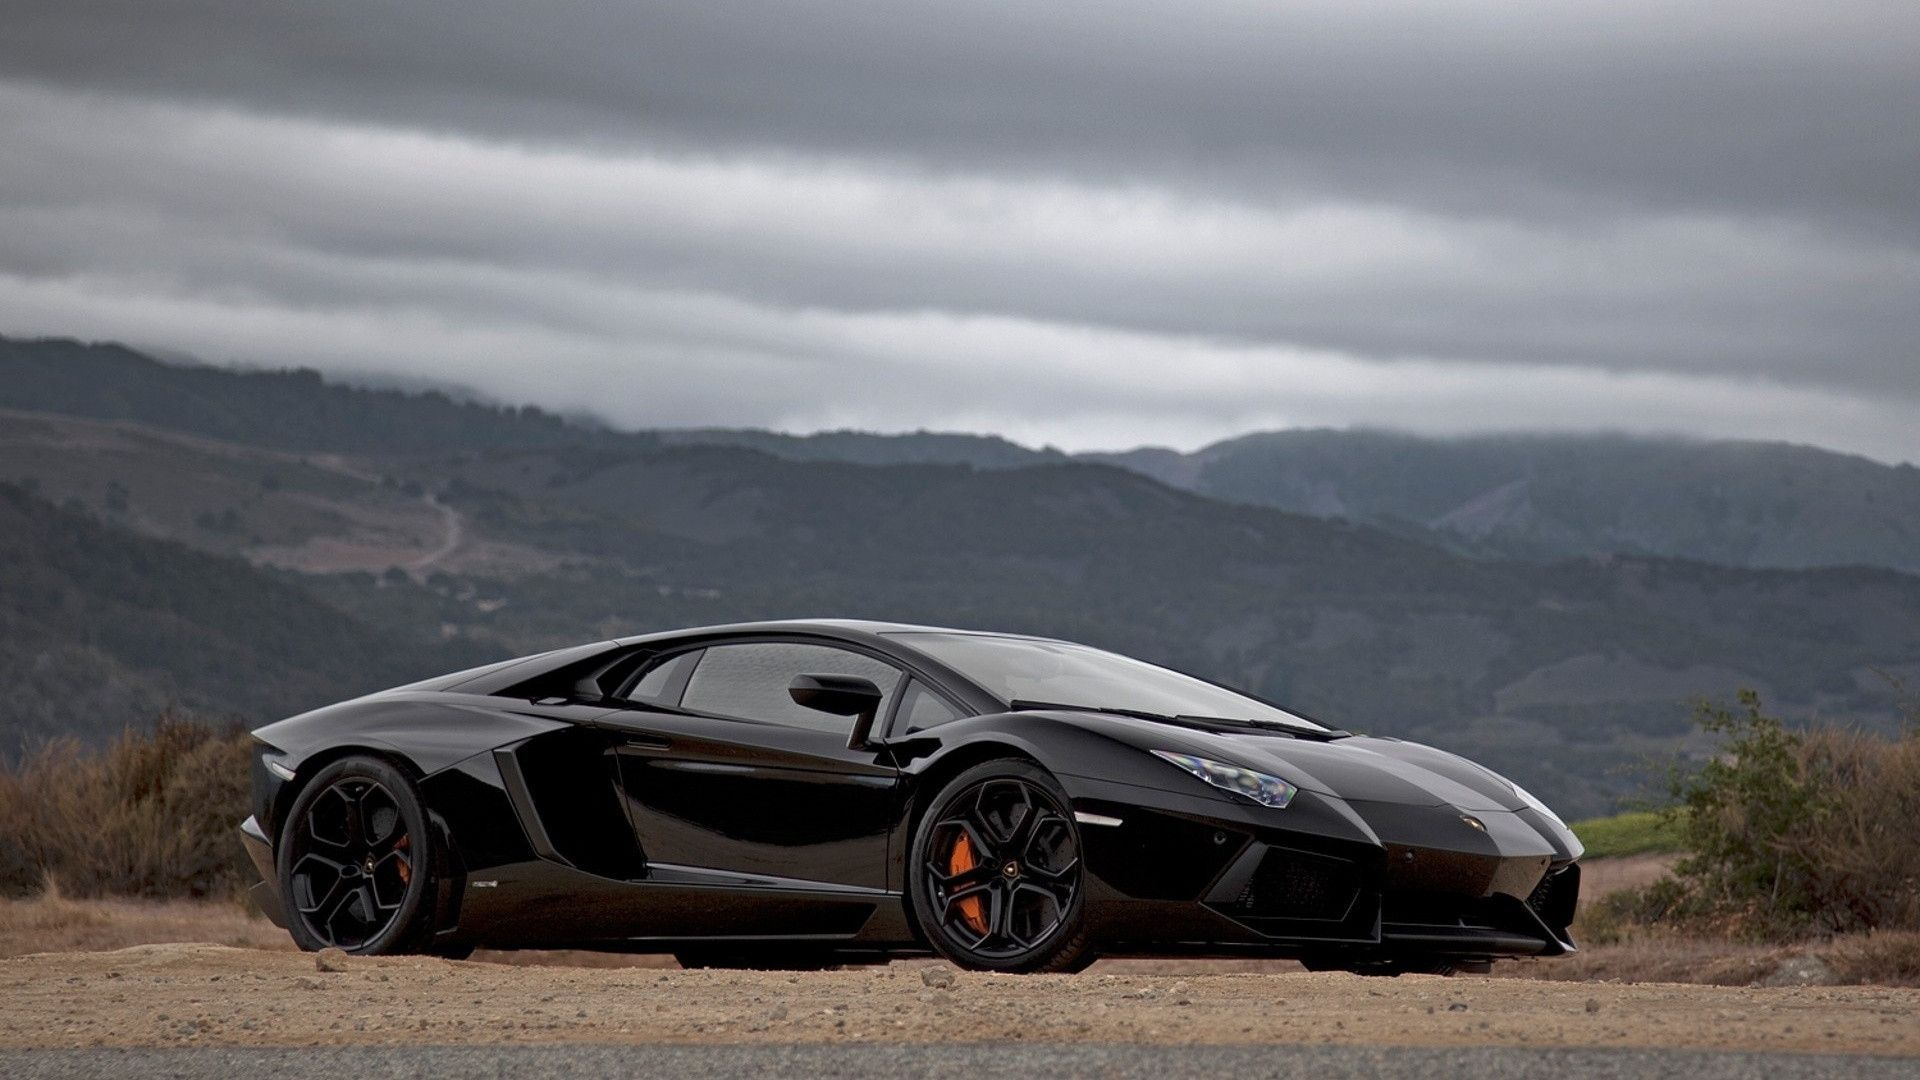 Lamborghini Aventador Black Wallpaper HD